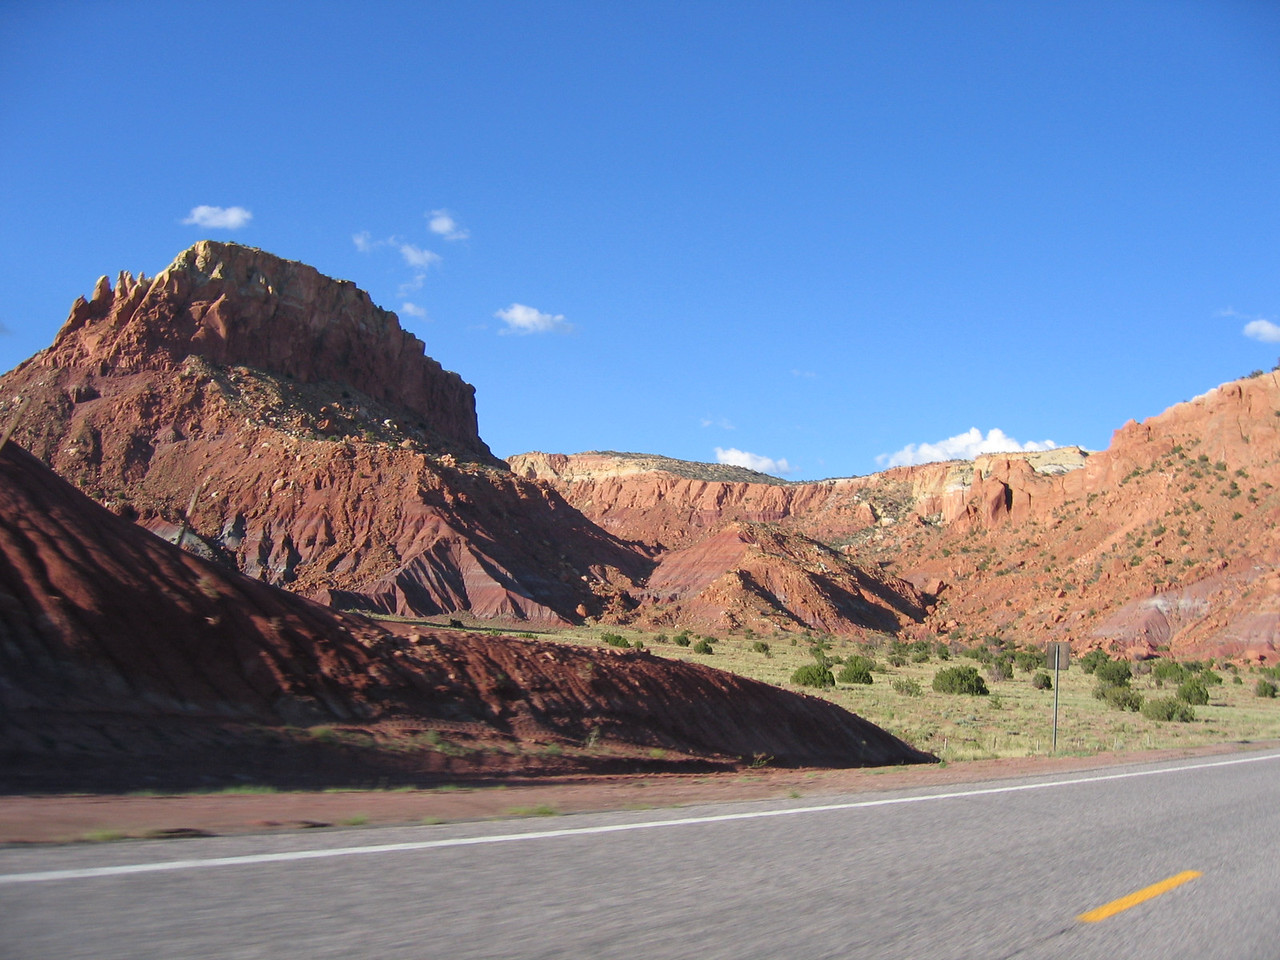 (Click on image to enlarge)<br /> <br /> The red rocks are an interesting contrast to the blue of the sky.